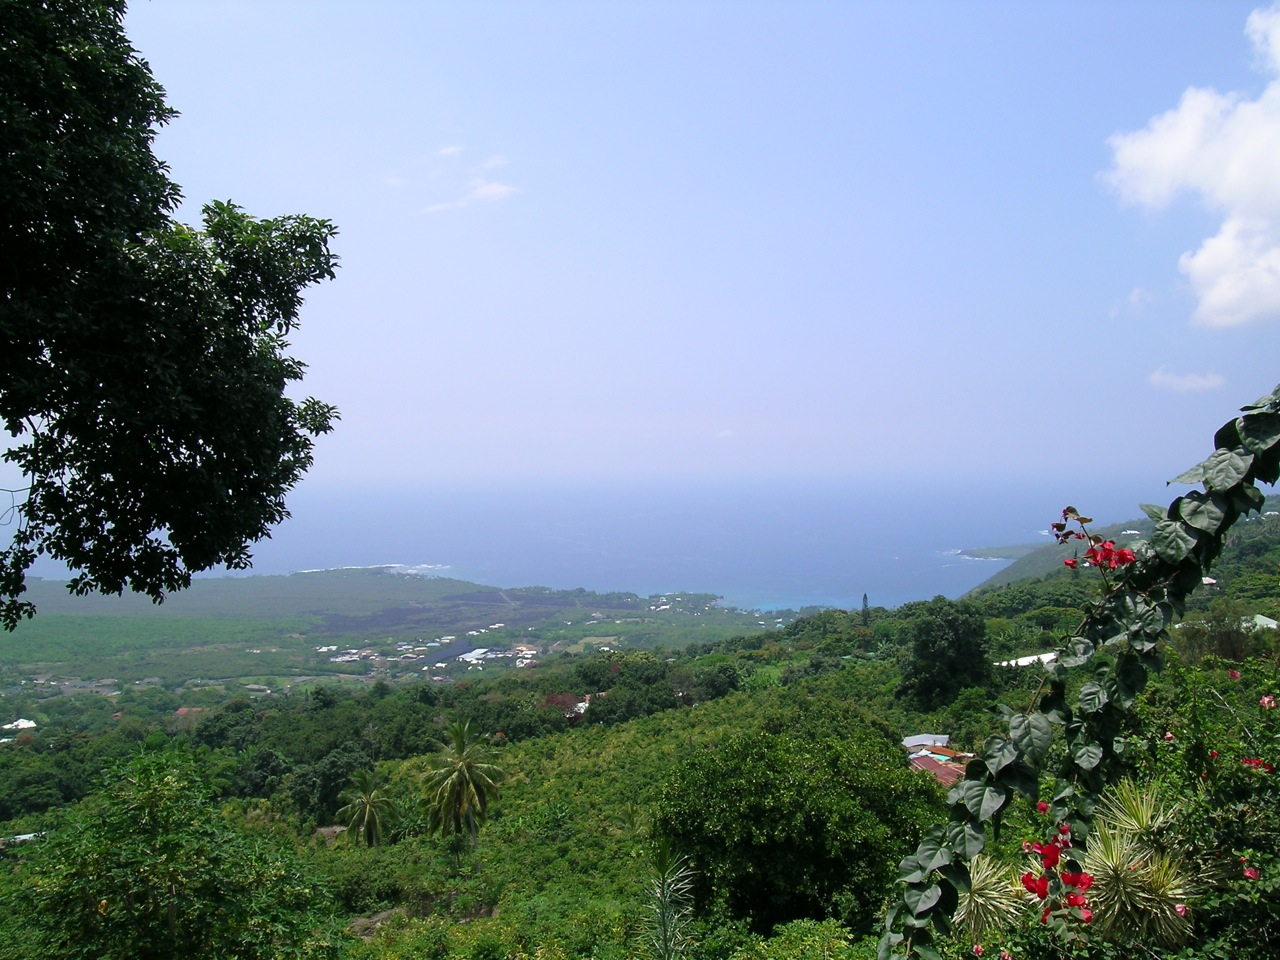 A Distant View of Kealakekua Bay